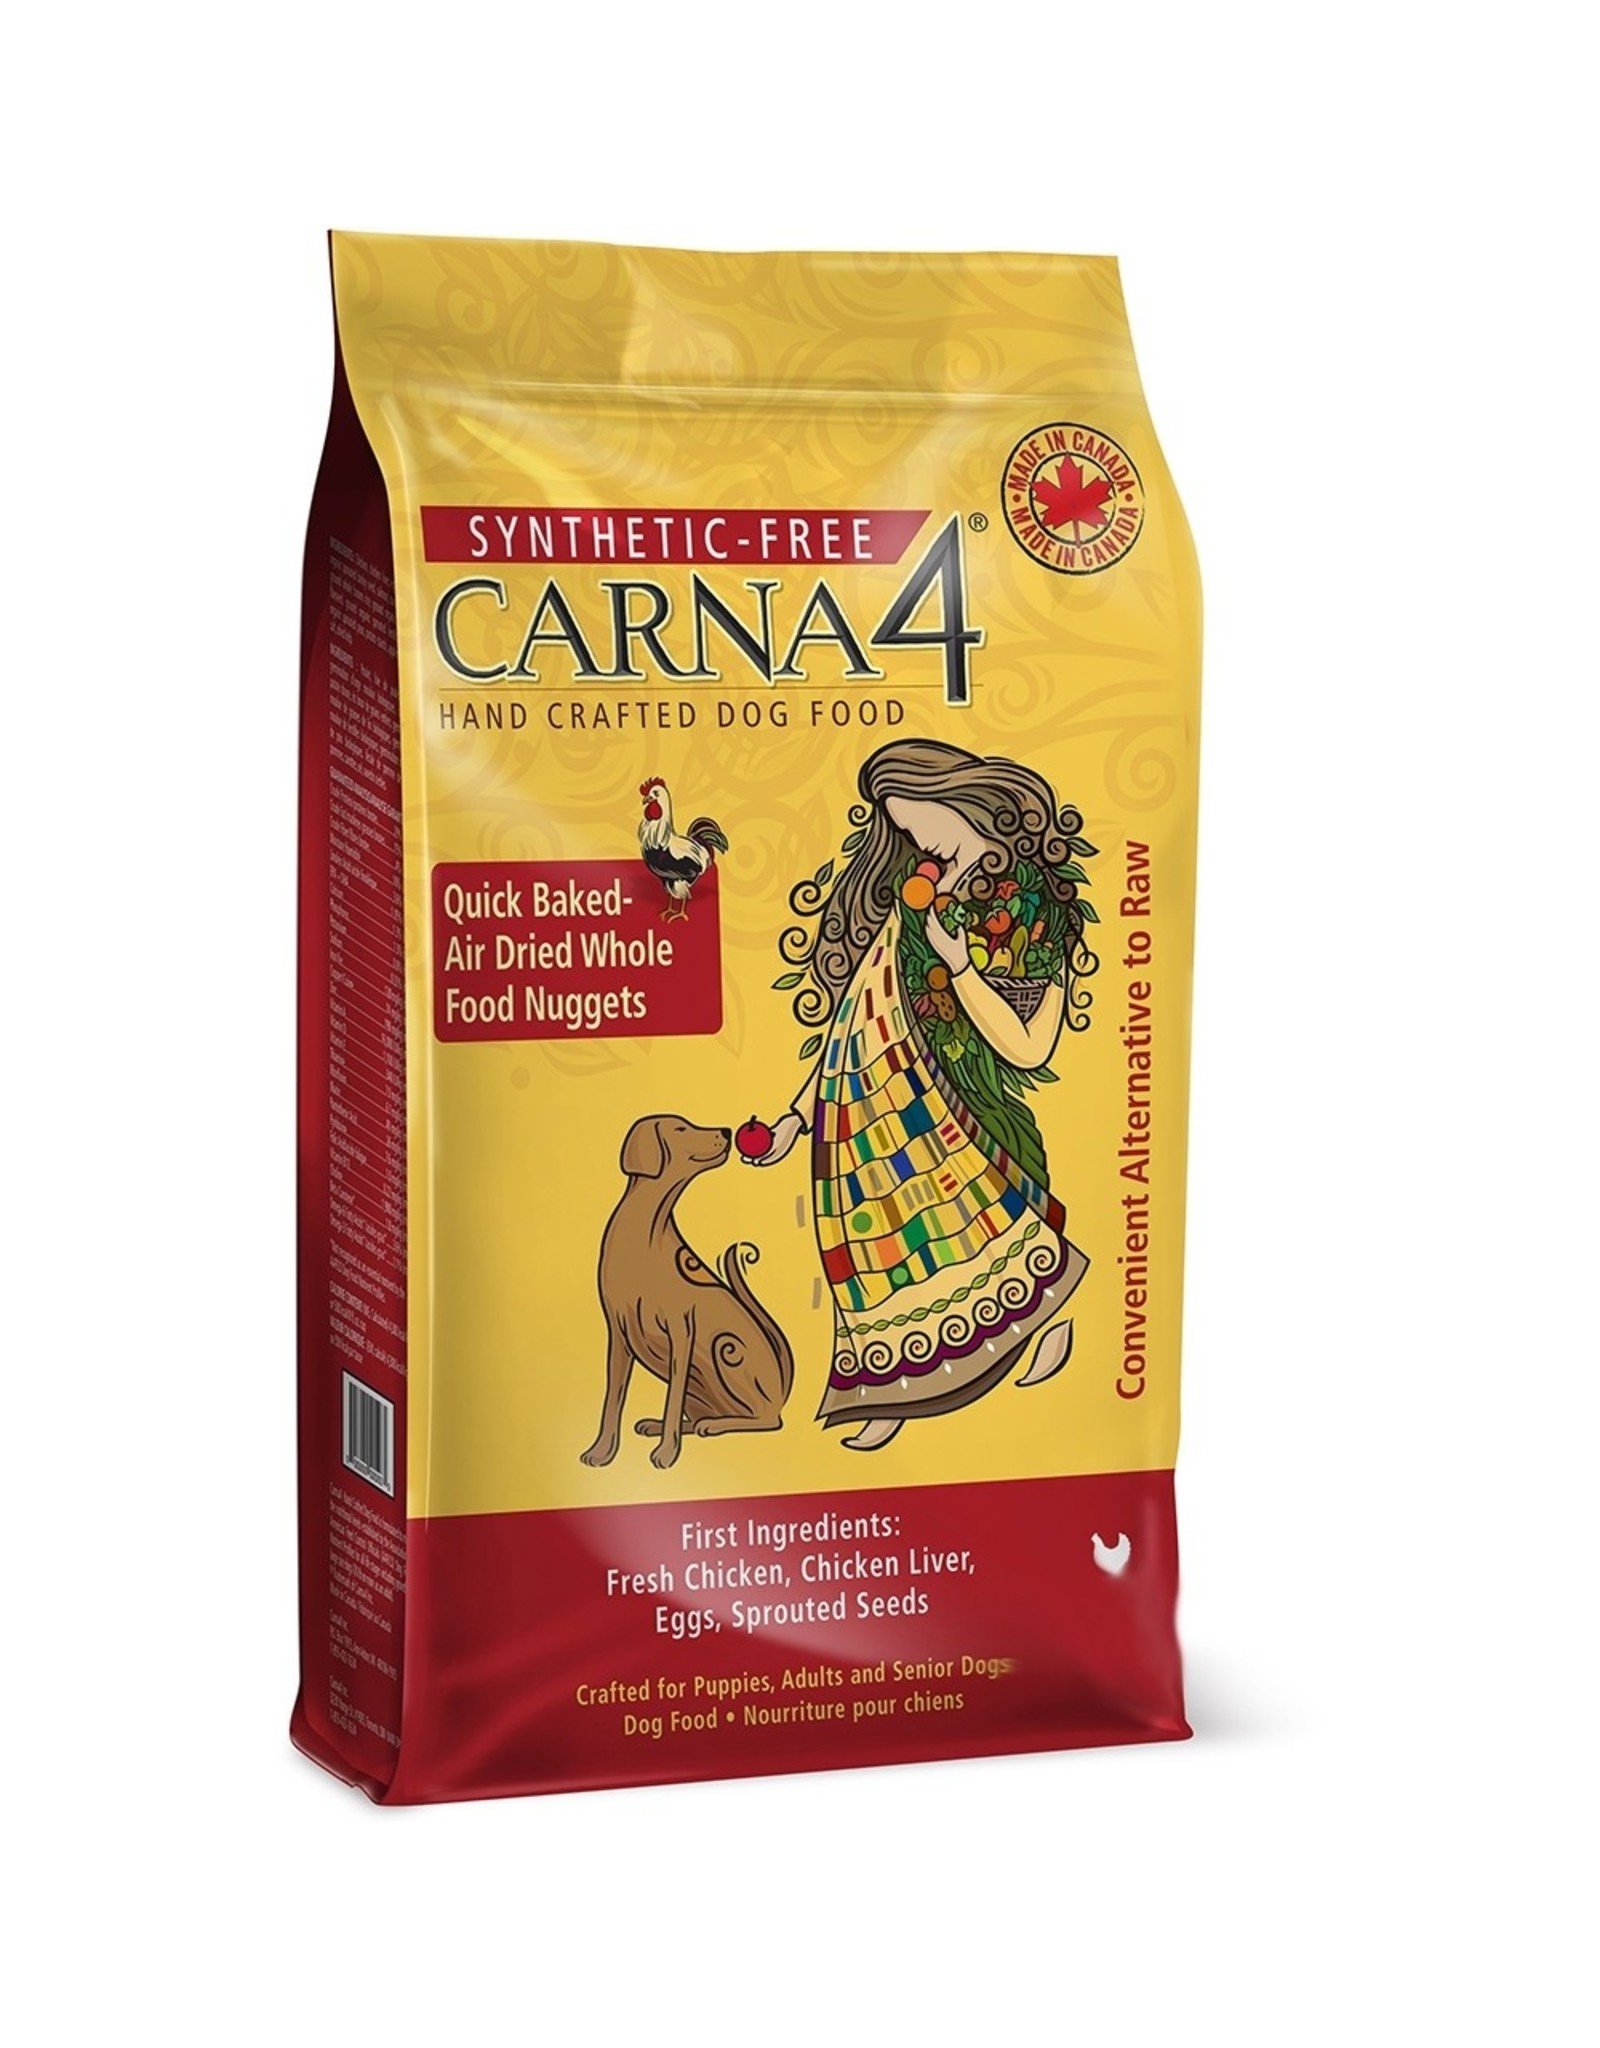 Carna4 Hand Crafted Pet Food CARNA4 DOG QUICK BAKED AIR DRIED WHOLE FOOD NUGGETS CHICKEN FORMULA